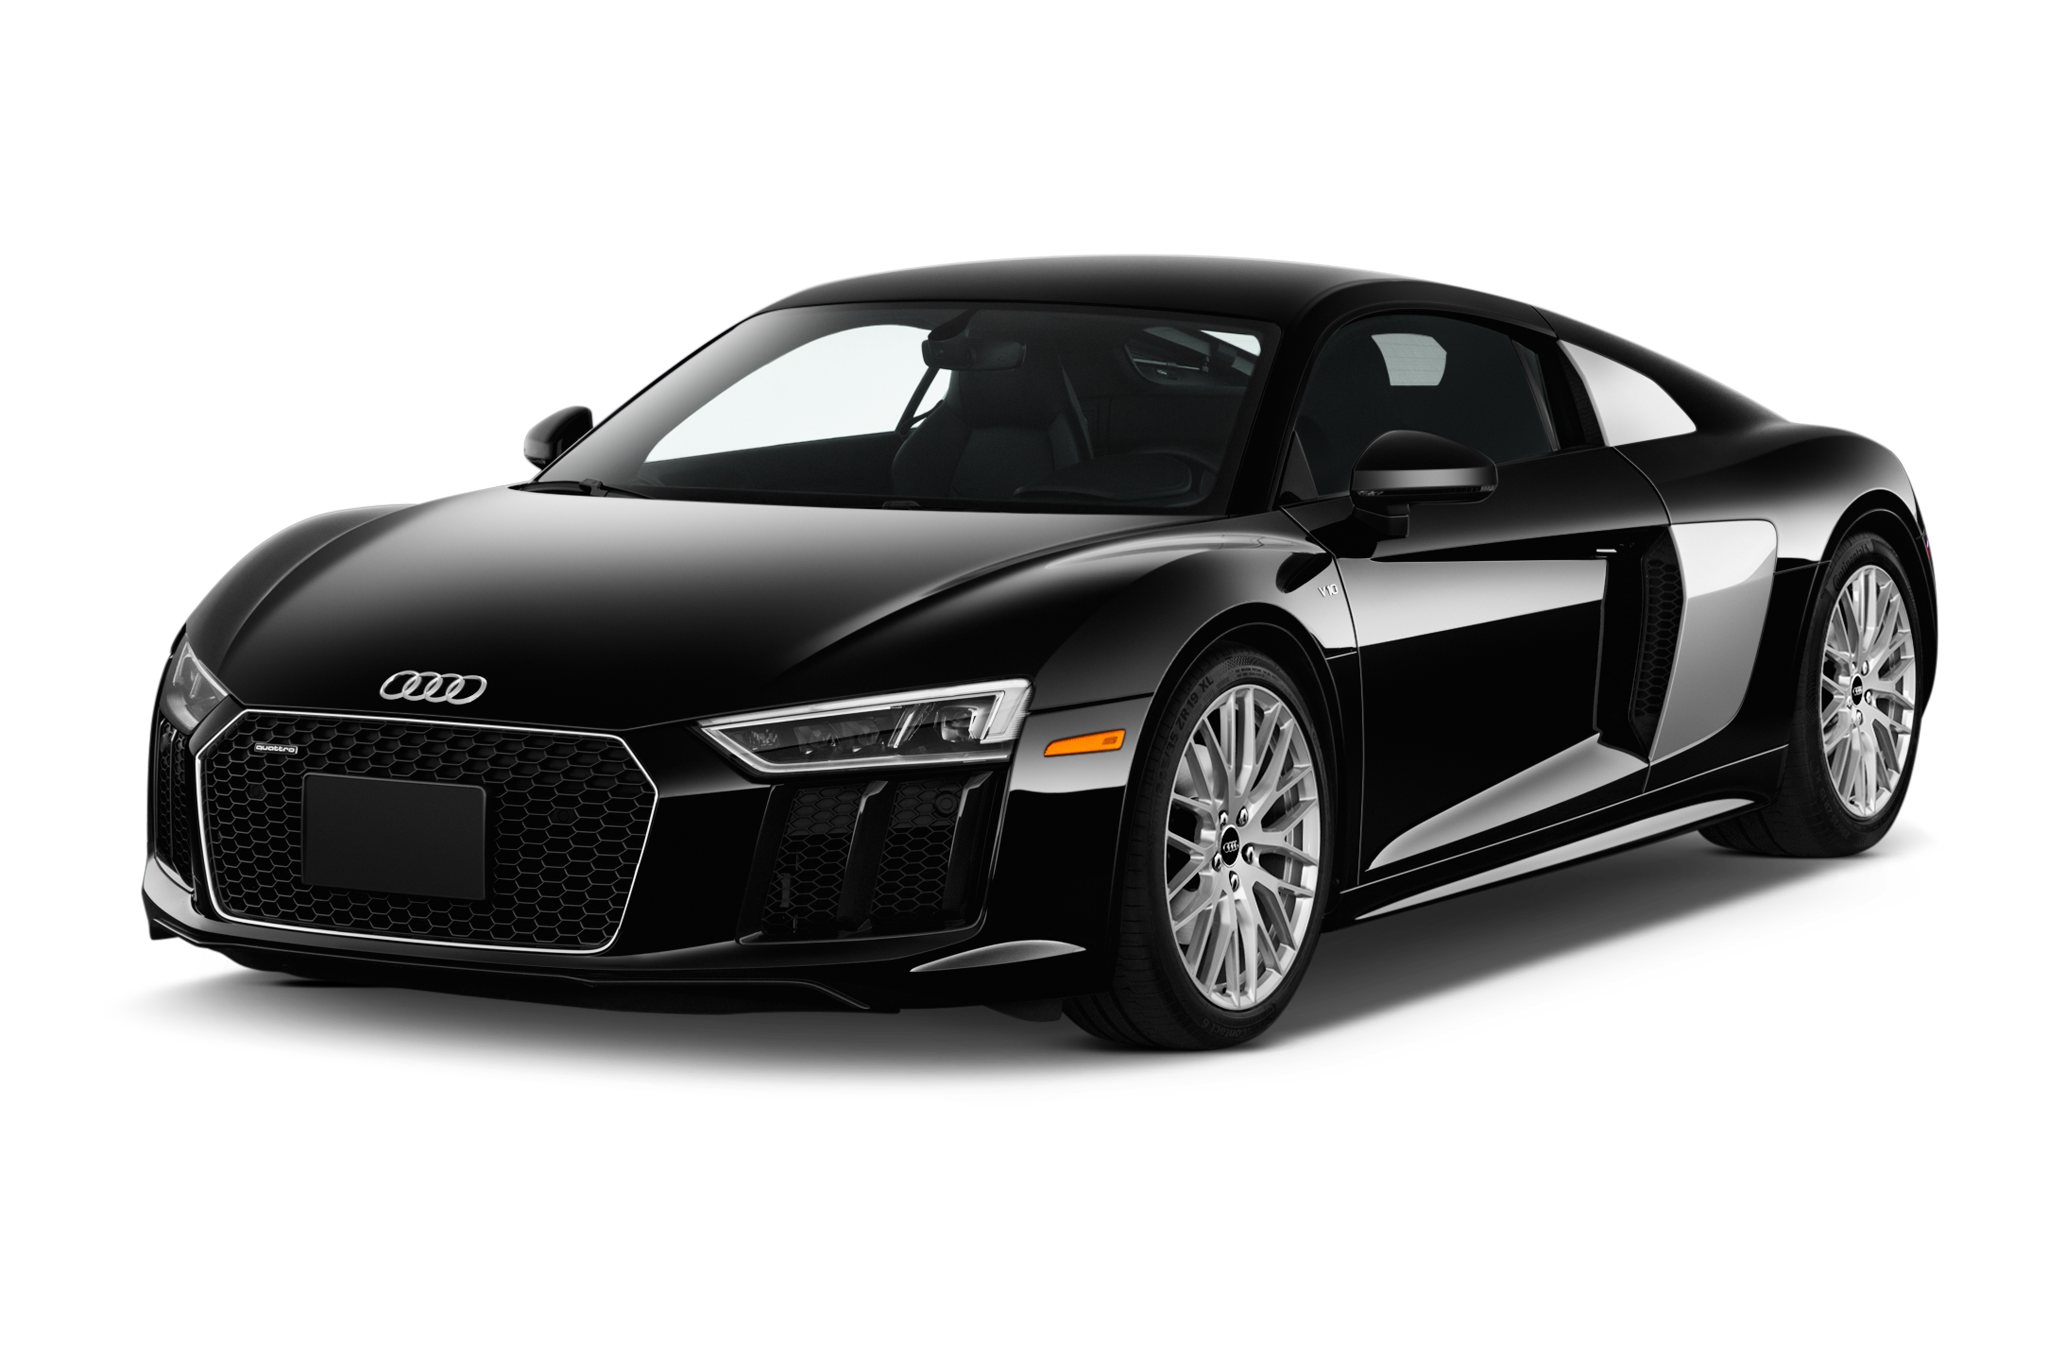 2018 audi r8 rws priced at 139 950 automobile magazine. Black Bedroom Furniture Sets. Home Design Ideas